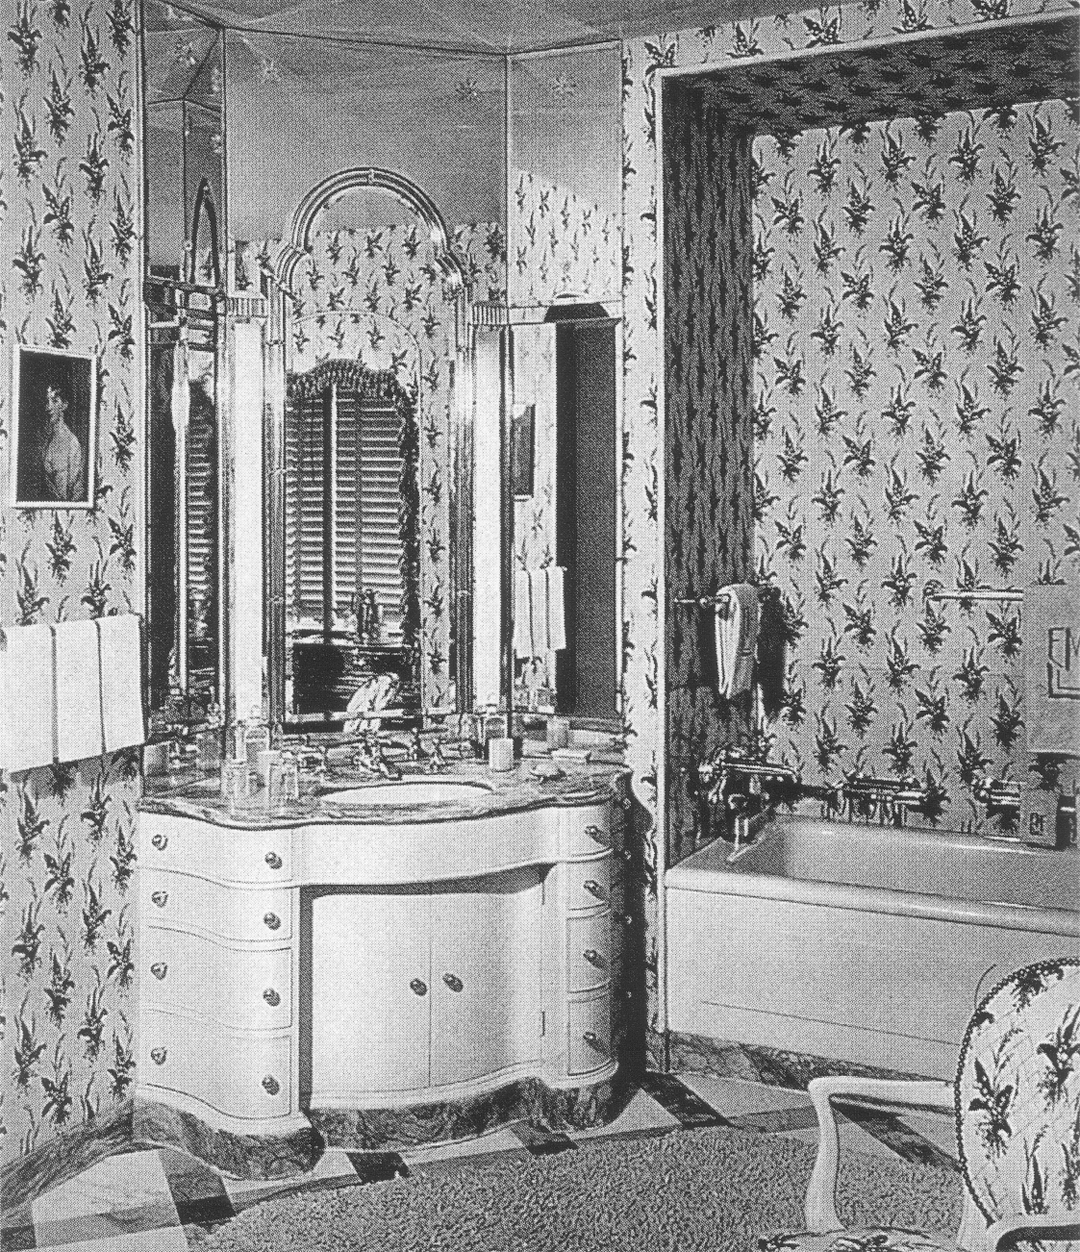 (above) This ornately shaped vanity, from the book 'David Adler, Architect: The Elements of Style' is in the bathroom of the Mrs. Evelyn Marshall Field House, called Easton. David's sister, Frances Elkins, partnered with him on the interiors. Nobody seems to know where he left off and where she began. The Queen Anne-Venetian-style mirror is an often repeated feature used in her designs.